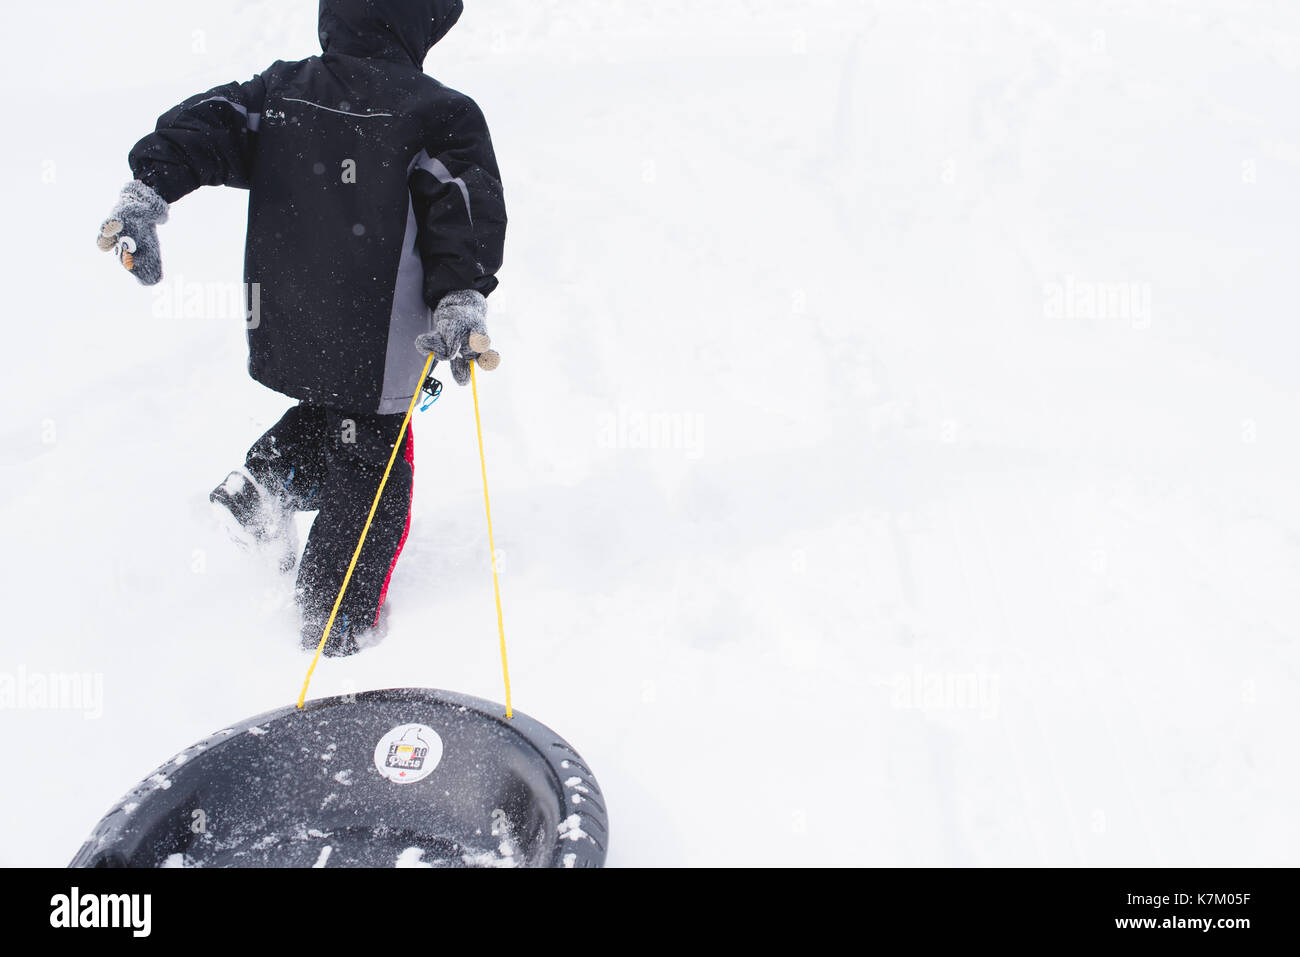 Young boy pulling a sled up a snow covered hill in the winter. - Stock Image